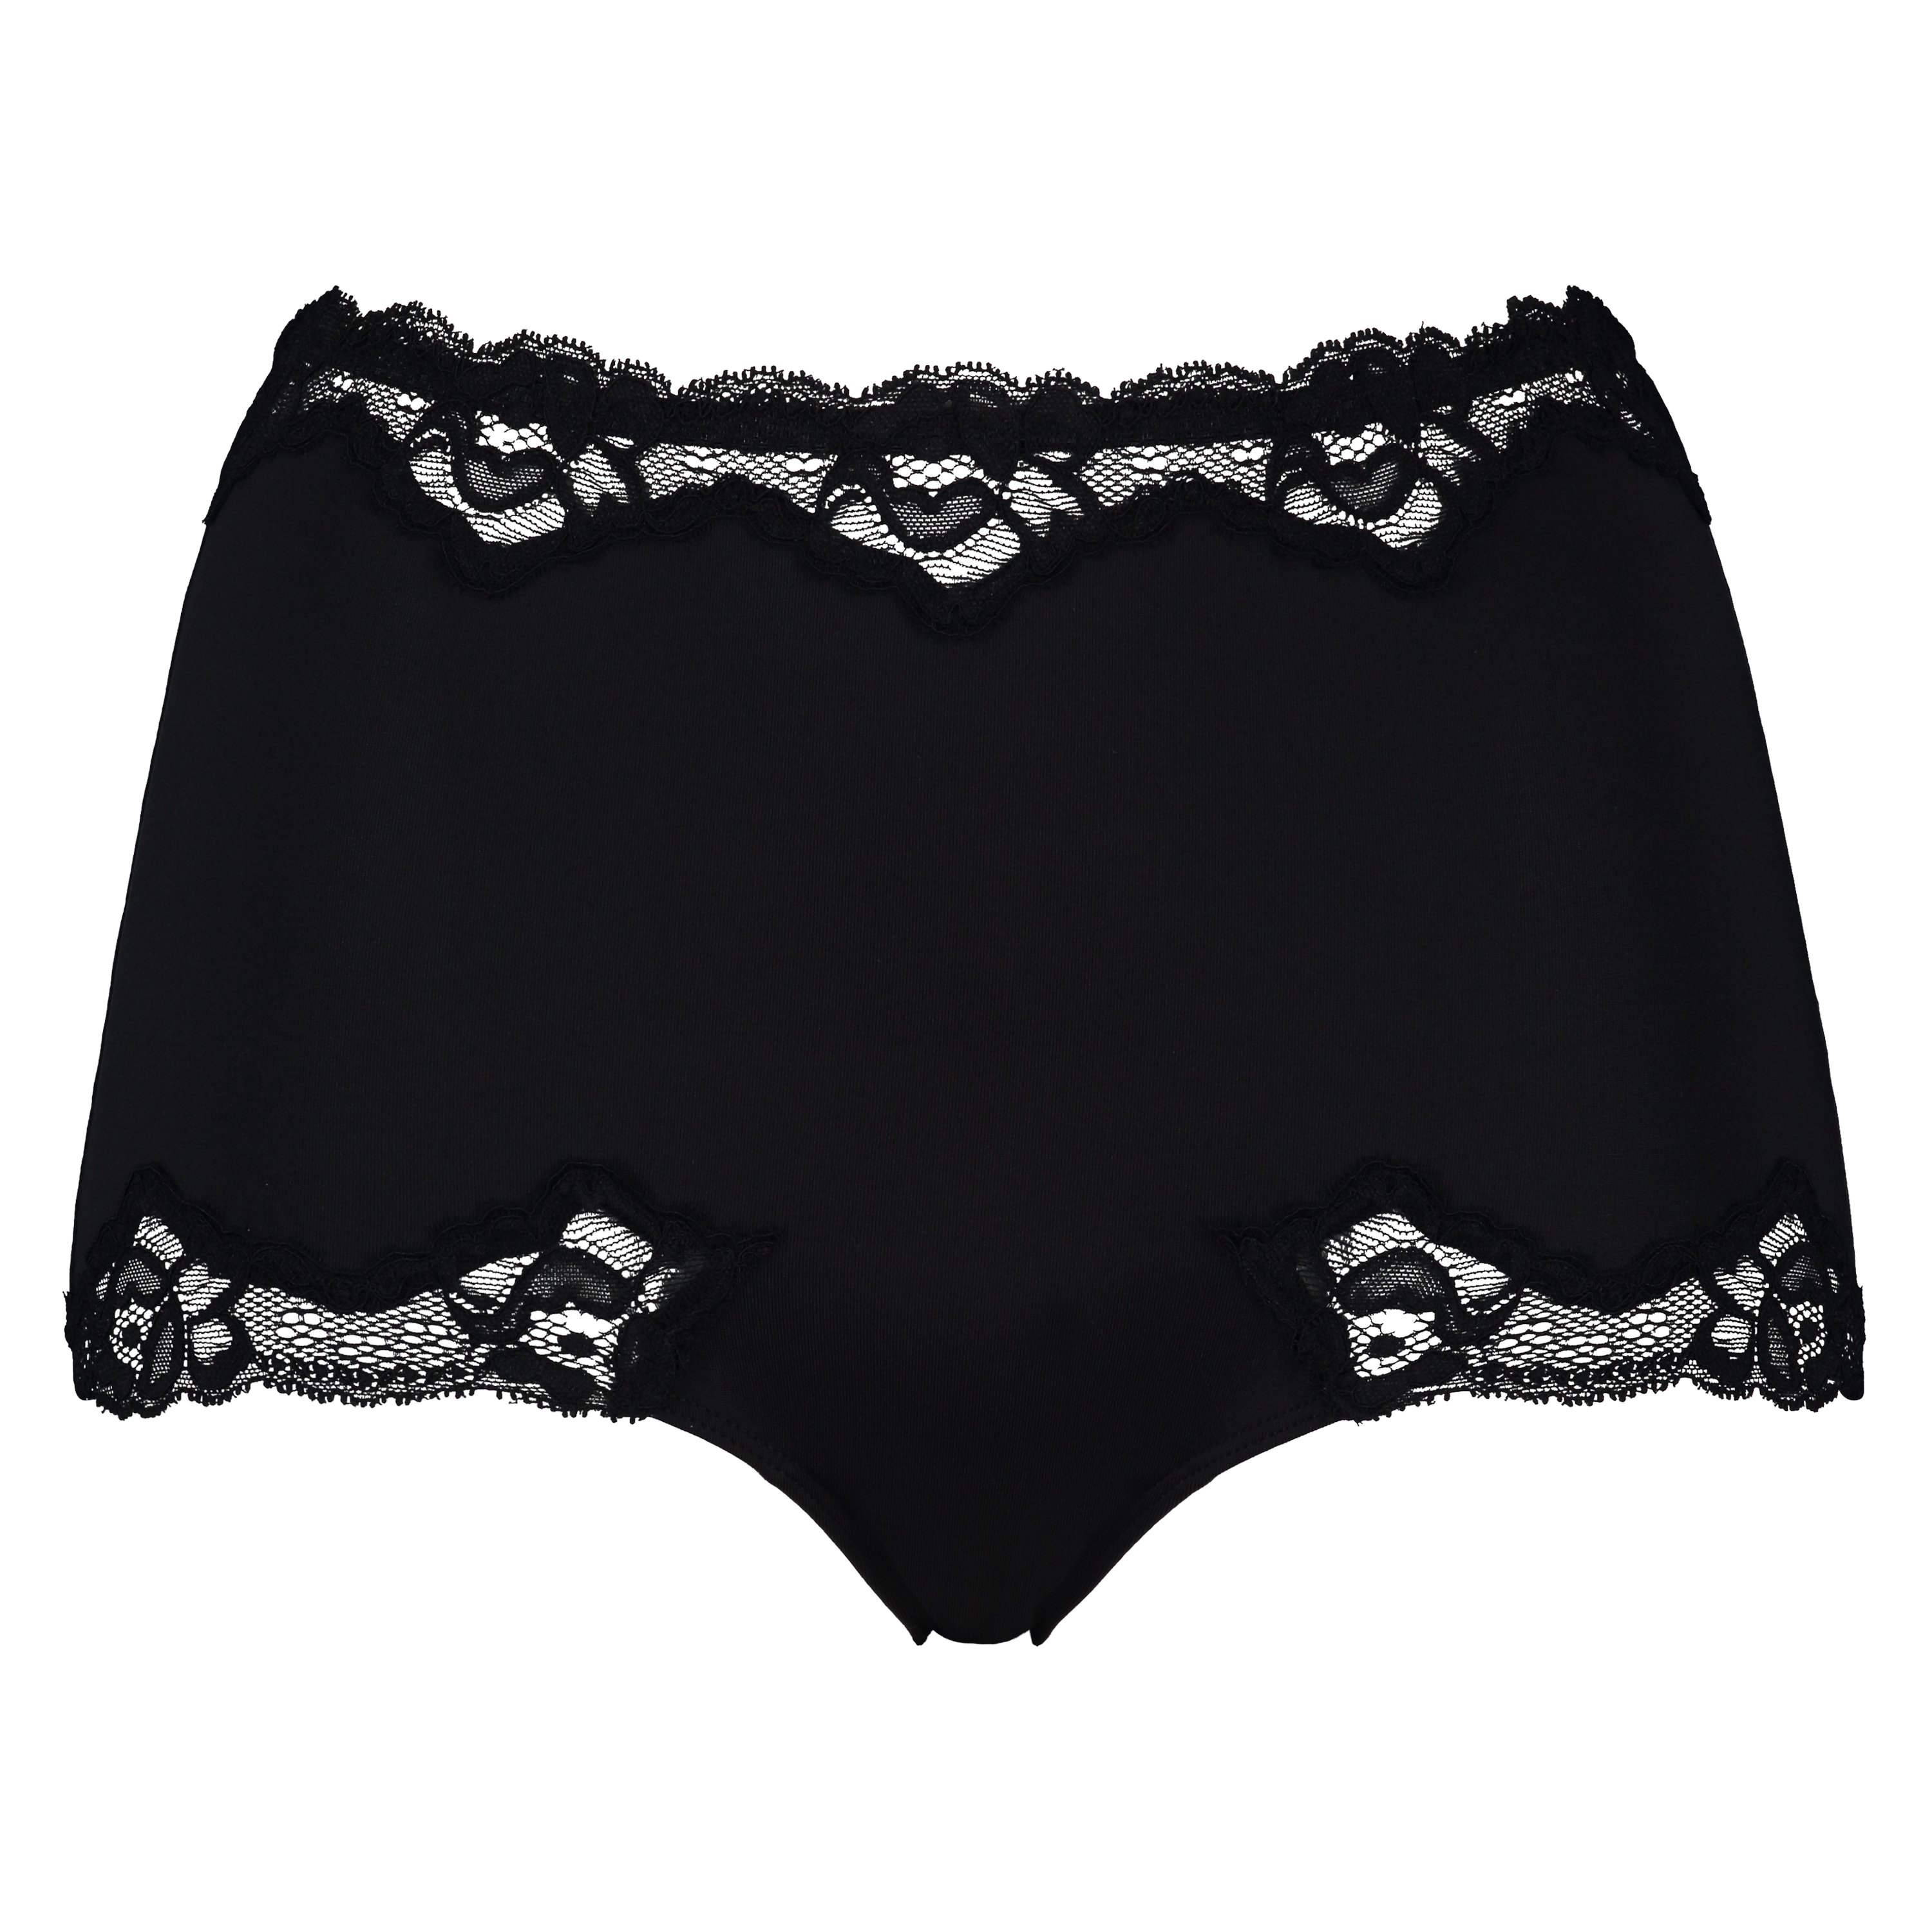 Secret Lace shorts, sort, main